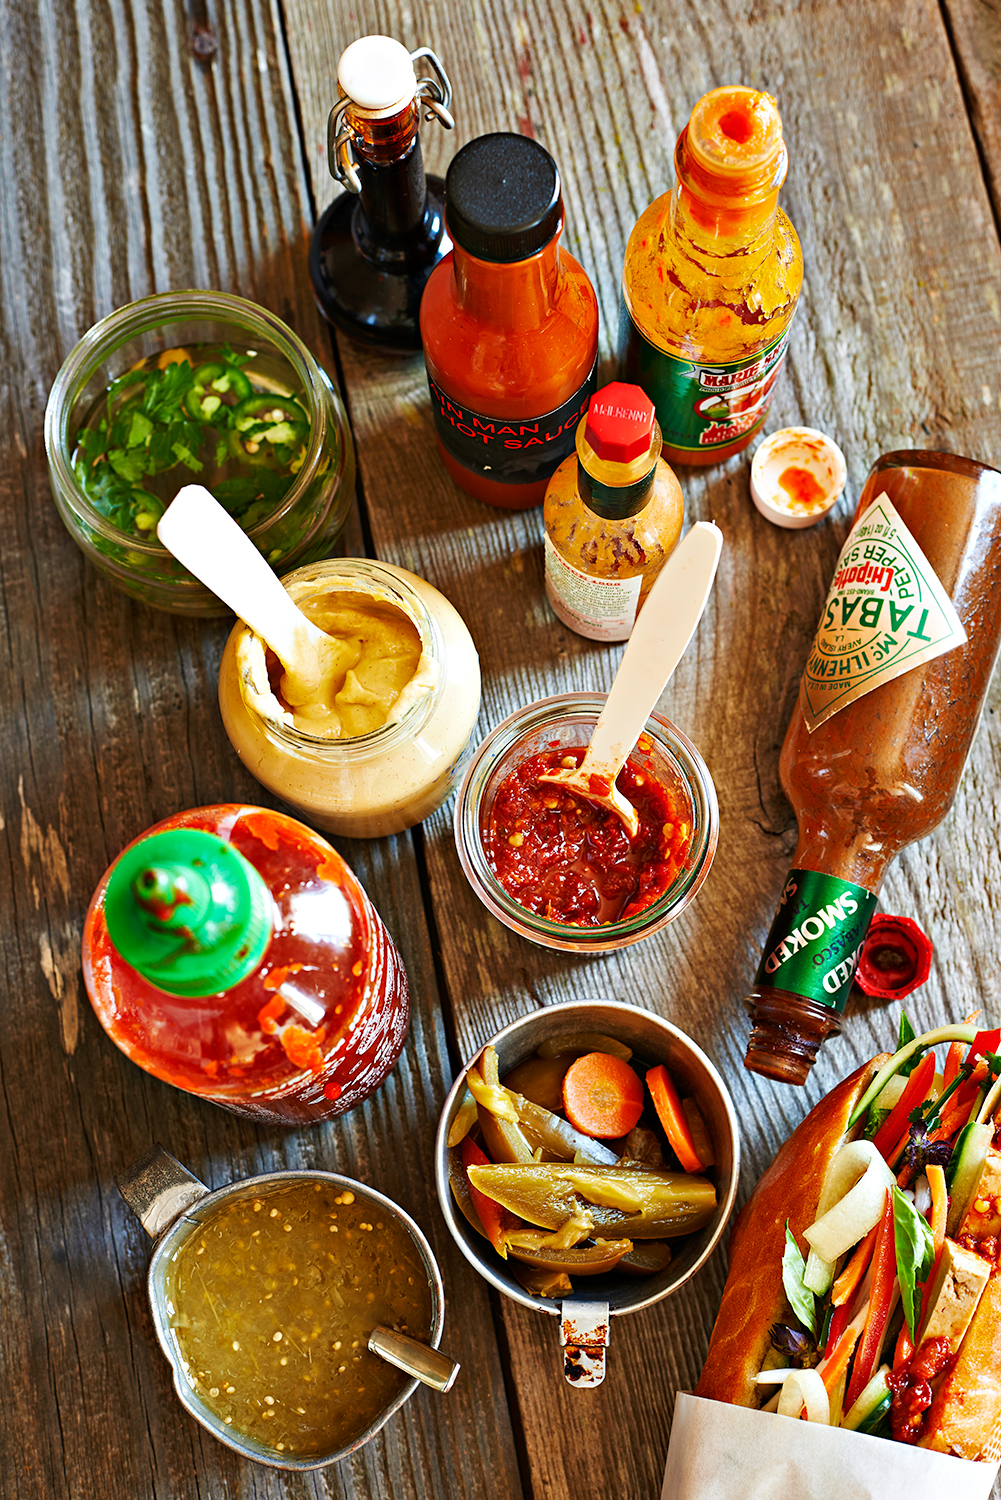 11_Hot-Sauce-Condiment-Table_0114_original.jpg